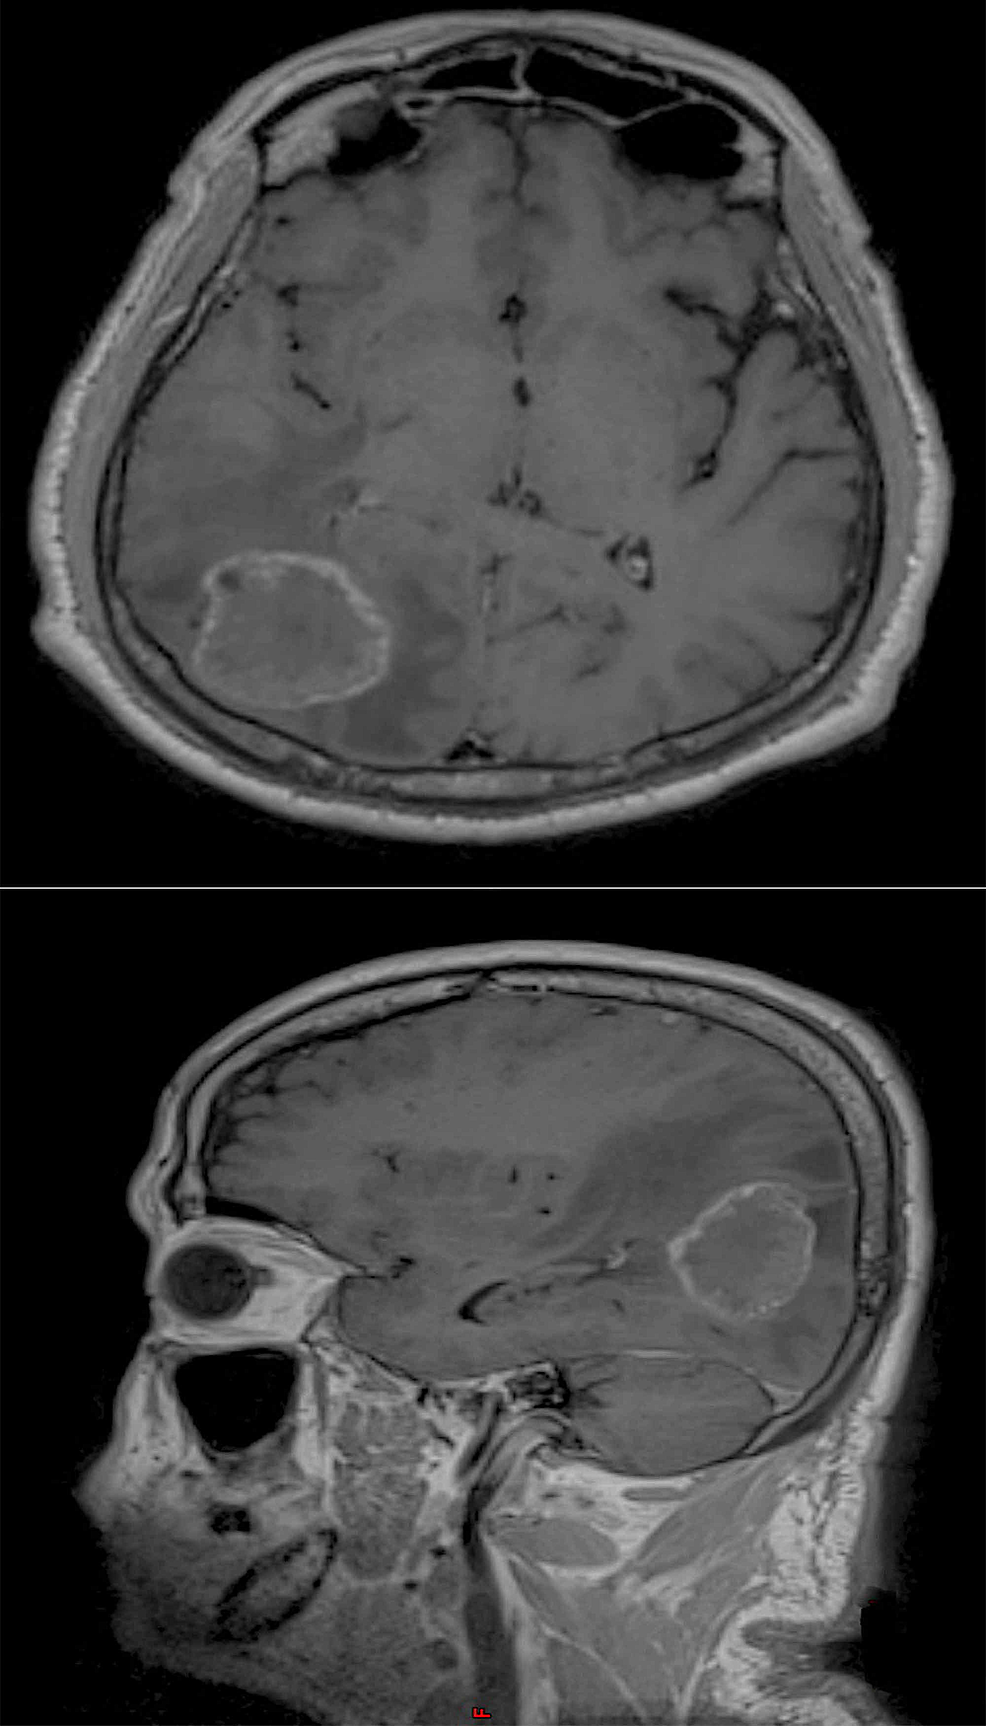 Preoperative-MRI-T1-sequence-with-contrast-showing-axial-view-(upper)-and-sagittal-view-(lower)-of-a-space-occupying-lesion-in-the-occipital-parietal-lobe